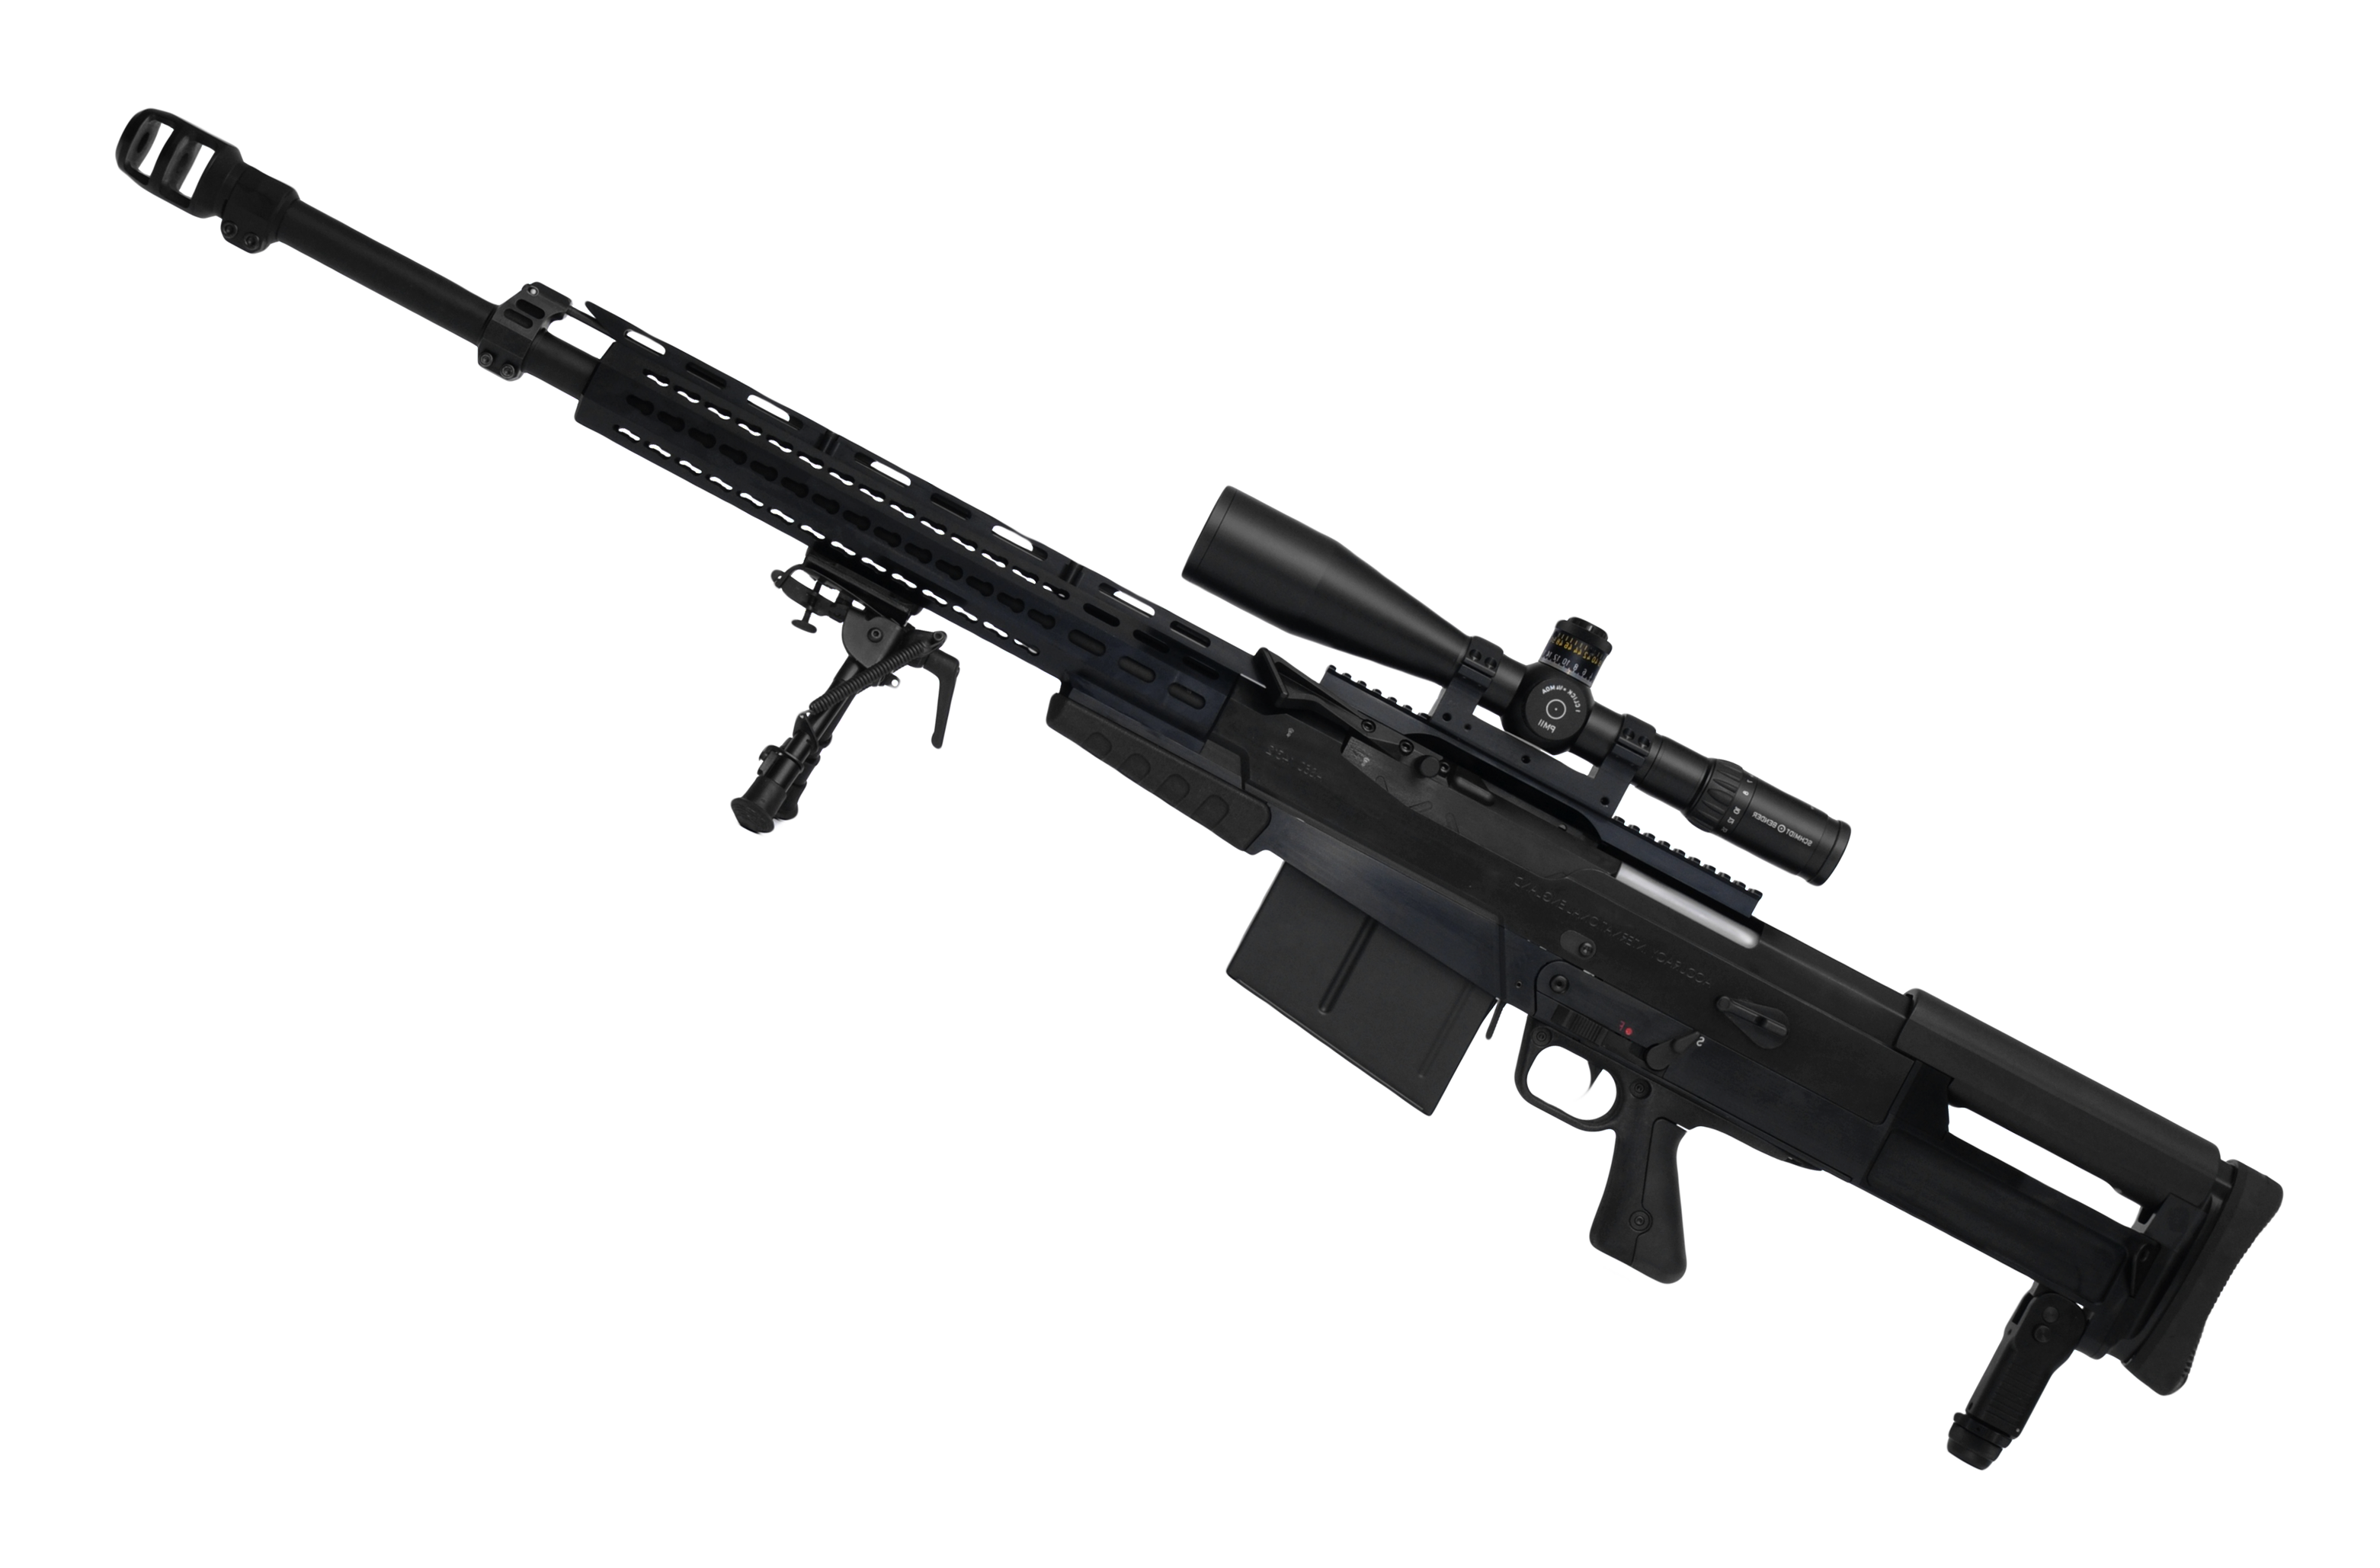 Black, Machine, Gun Png image #40741